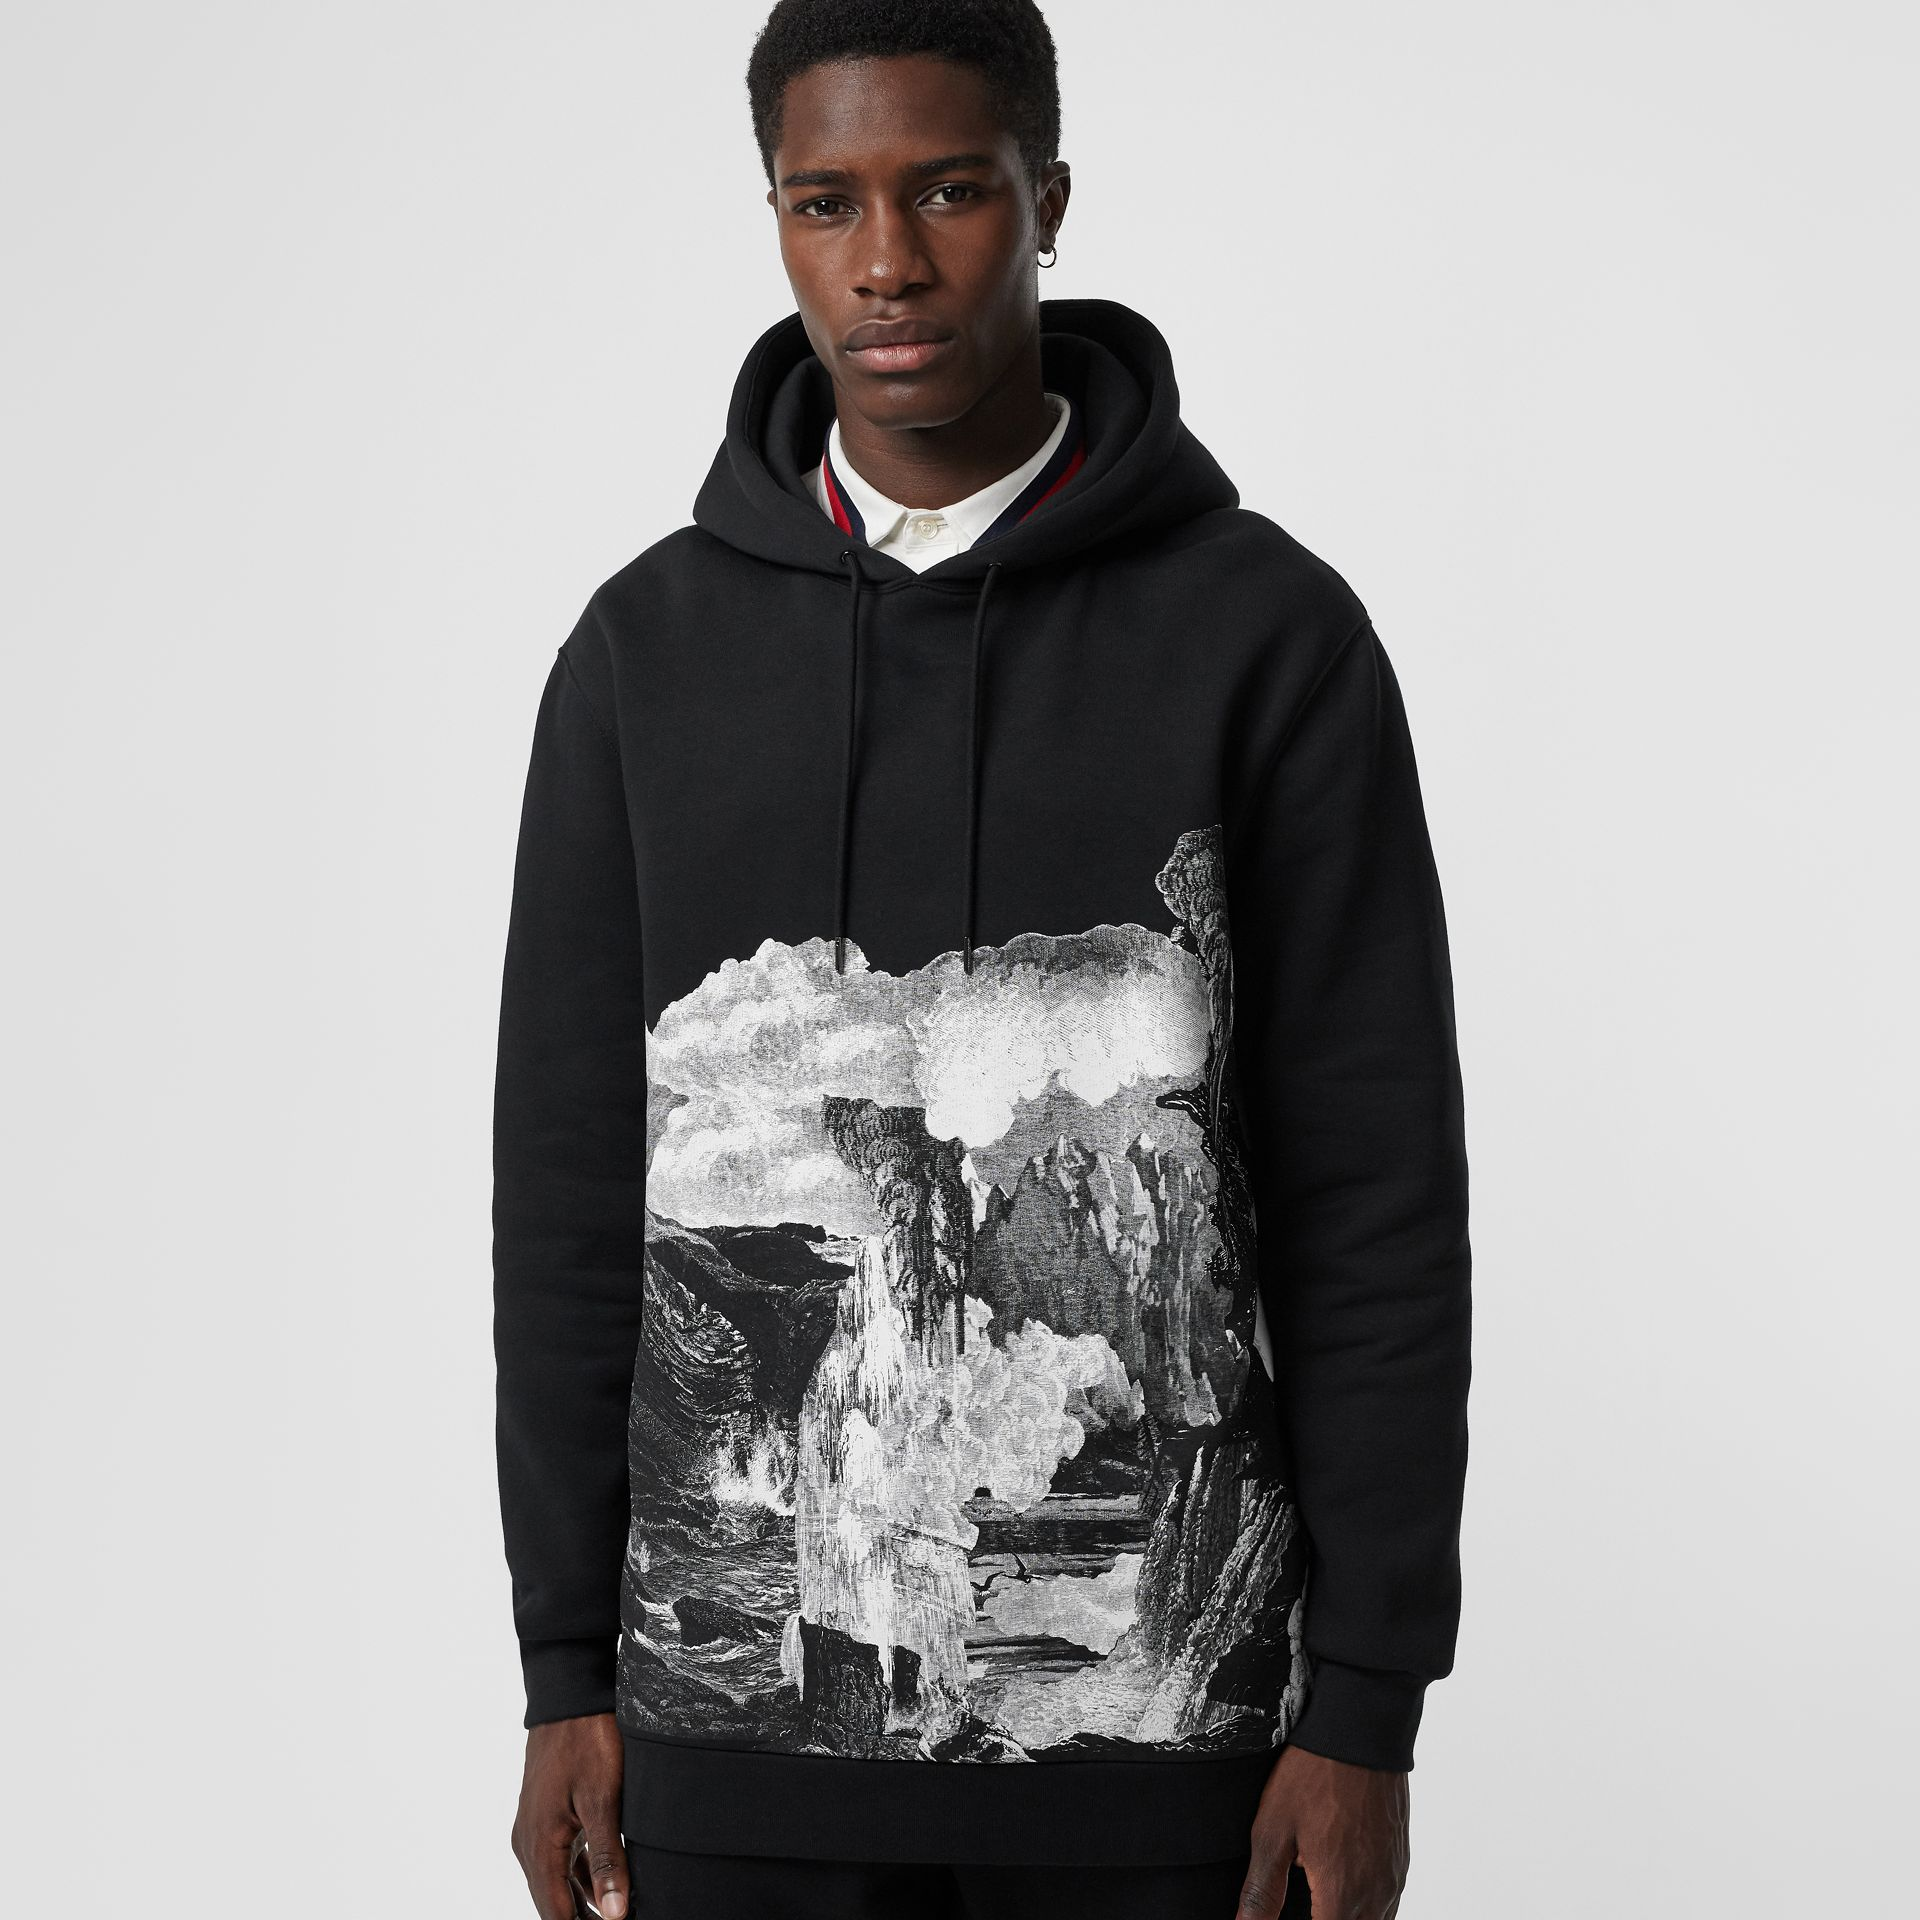 Dreamscape Print Cotton Blend Hoodie in Black - Men | Burberry Canada - gallery image 4